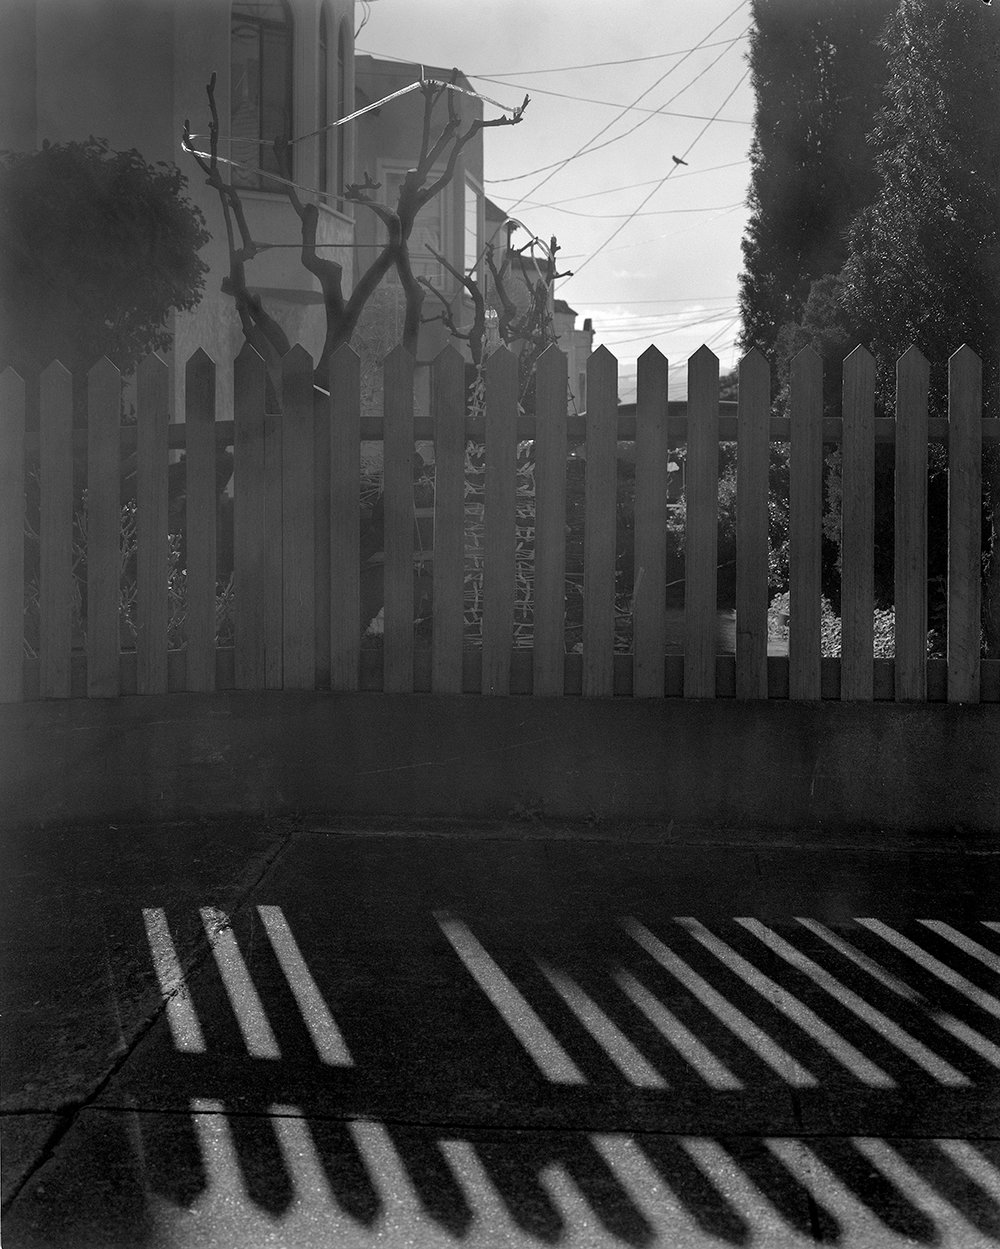 Fence Shadow, Sunset District, San Francisco 2017